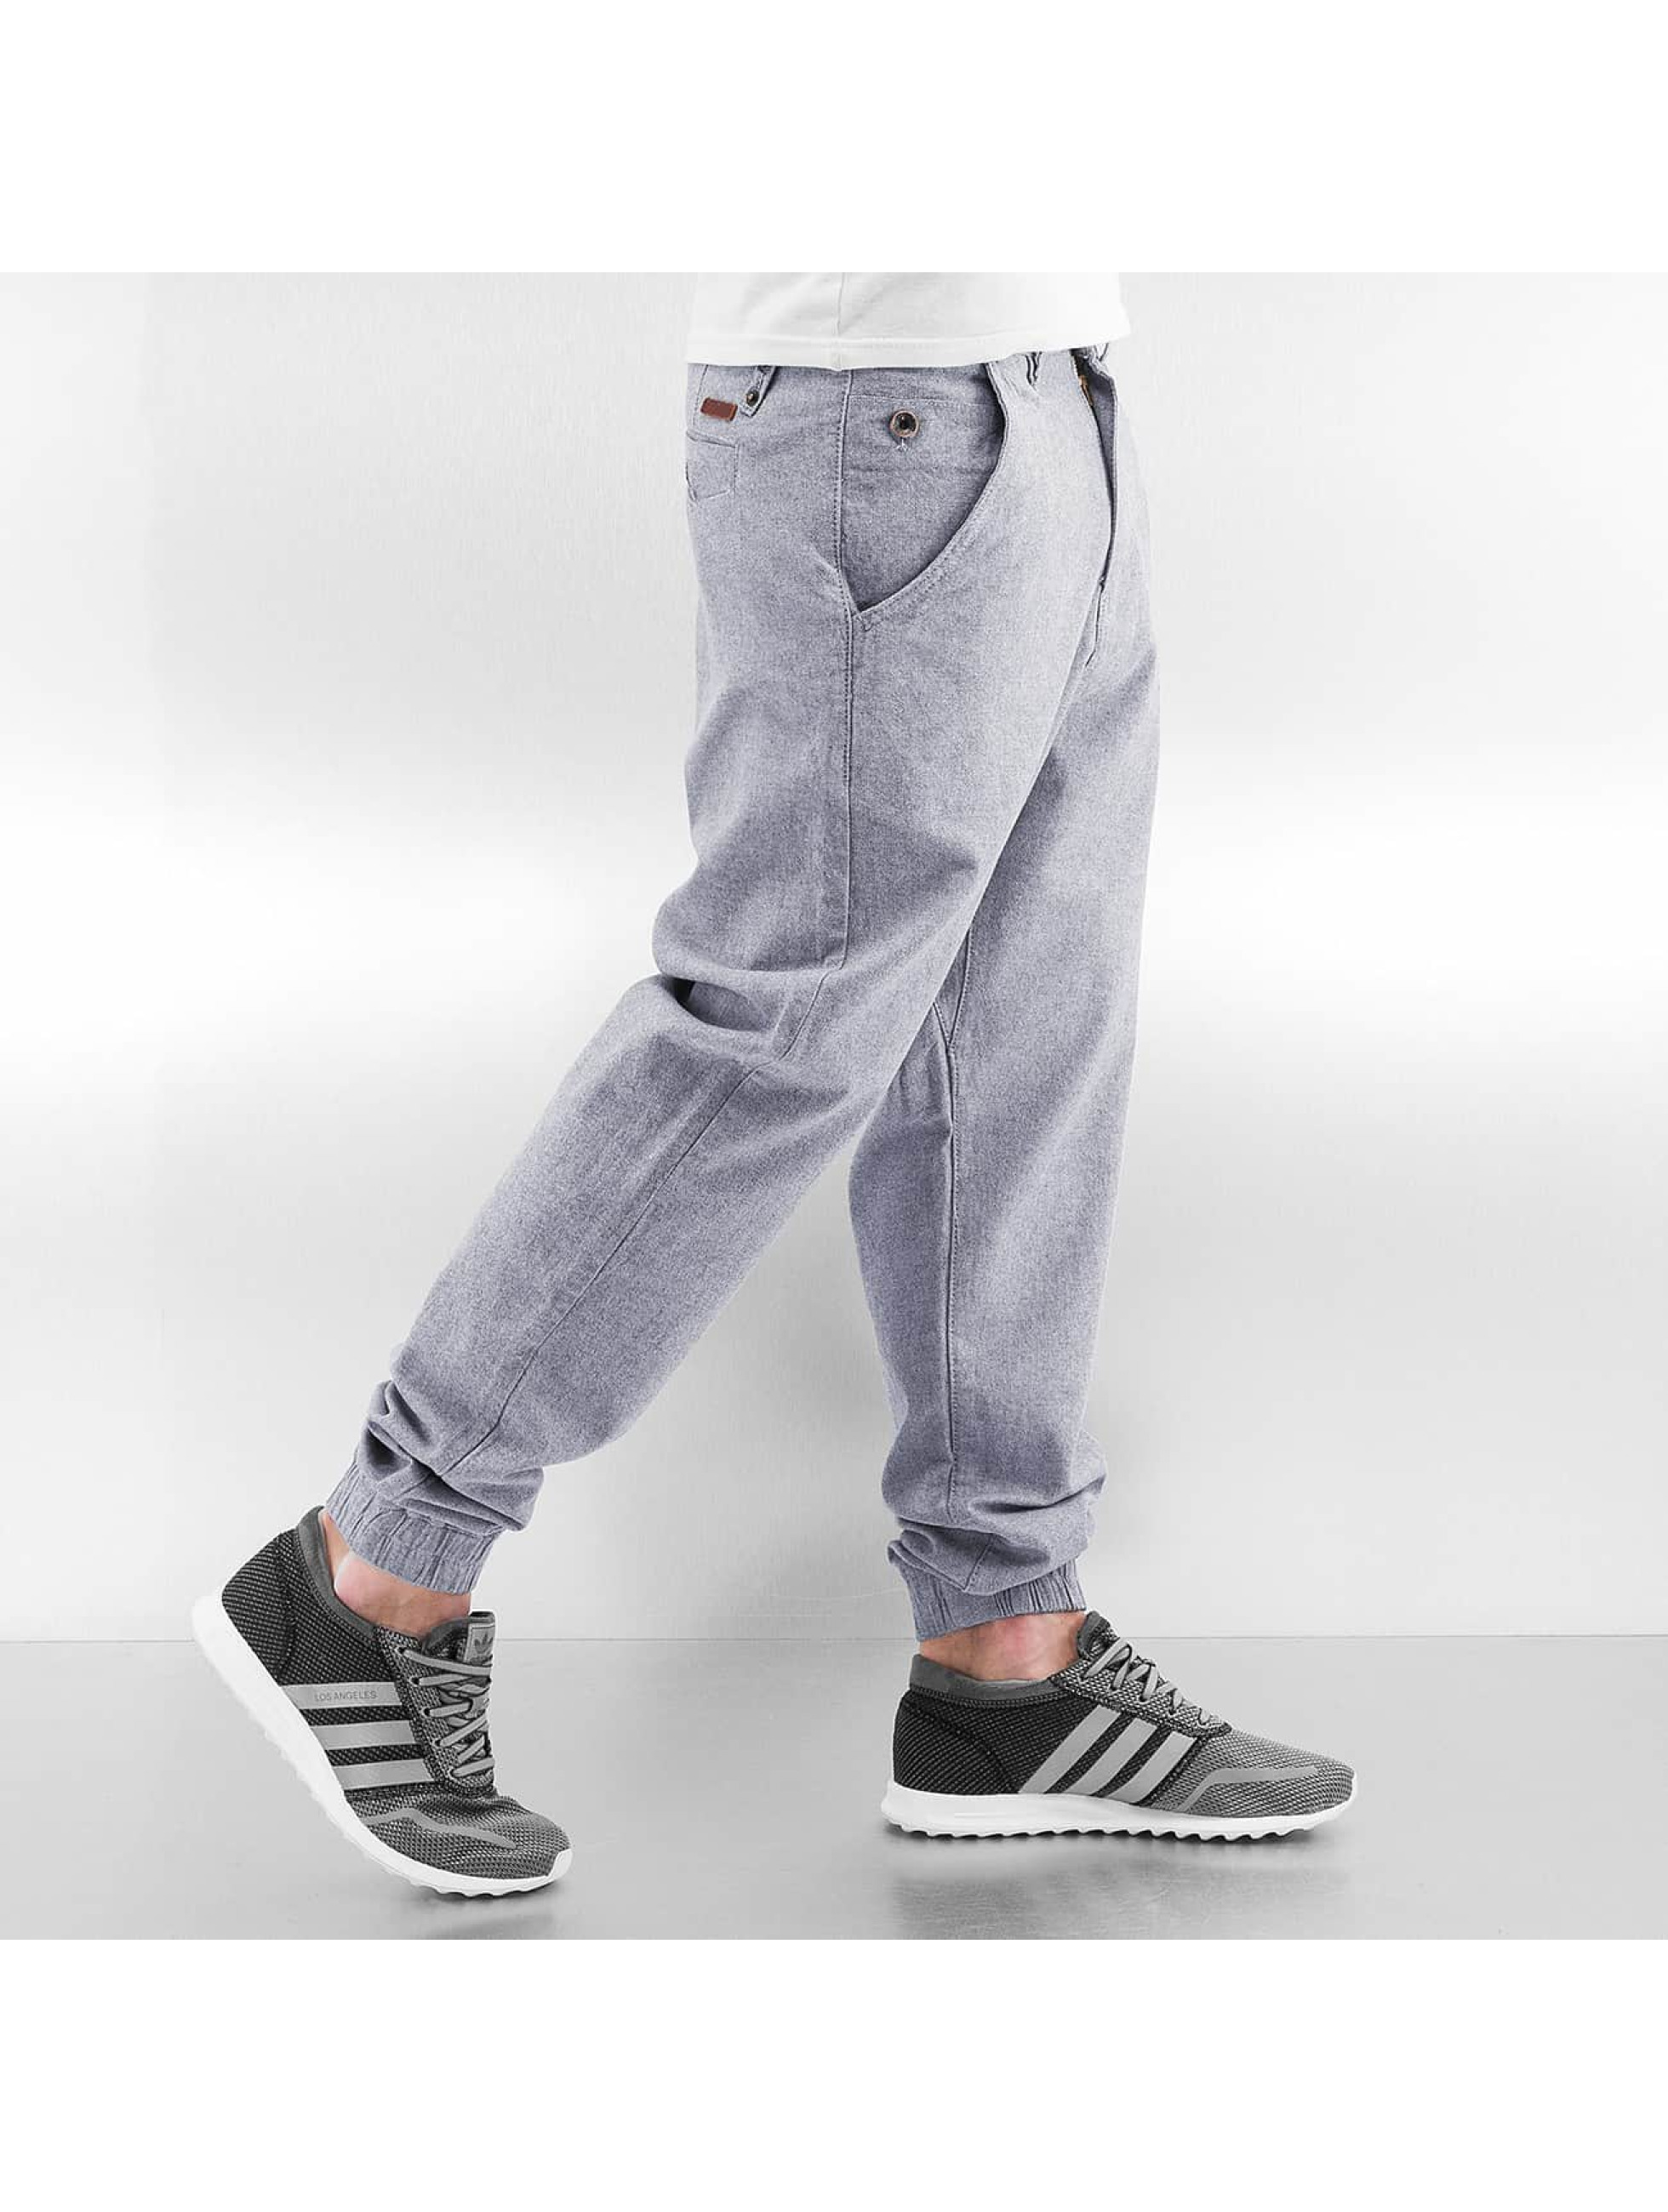 Rocawear Chino New Jogger Non Denim blau